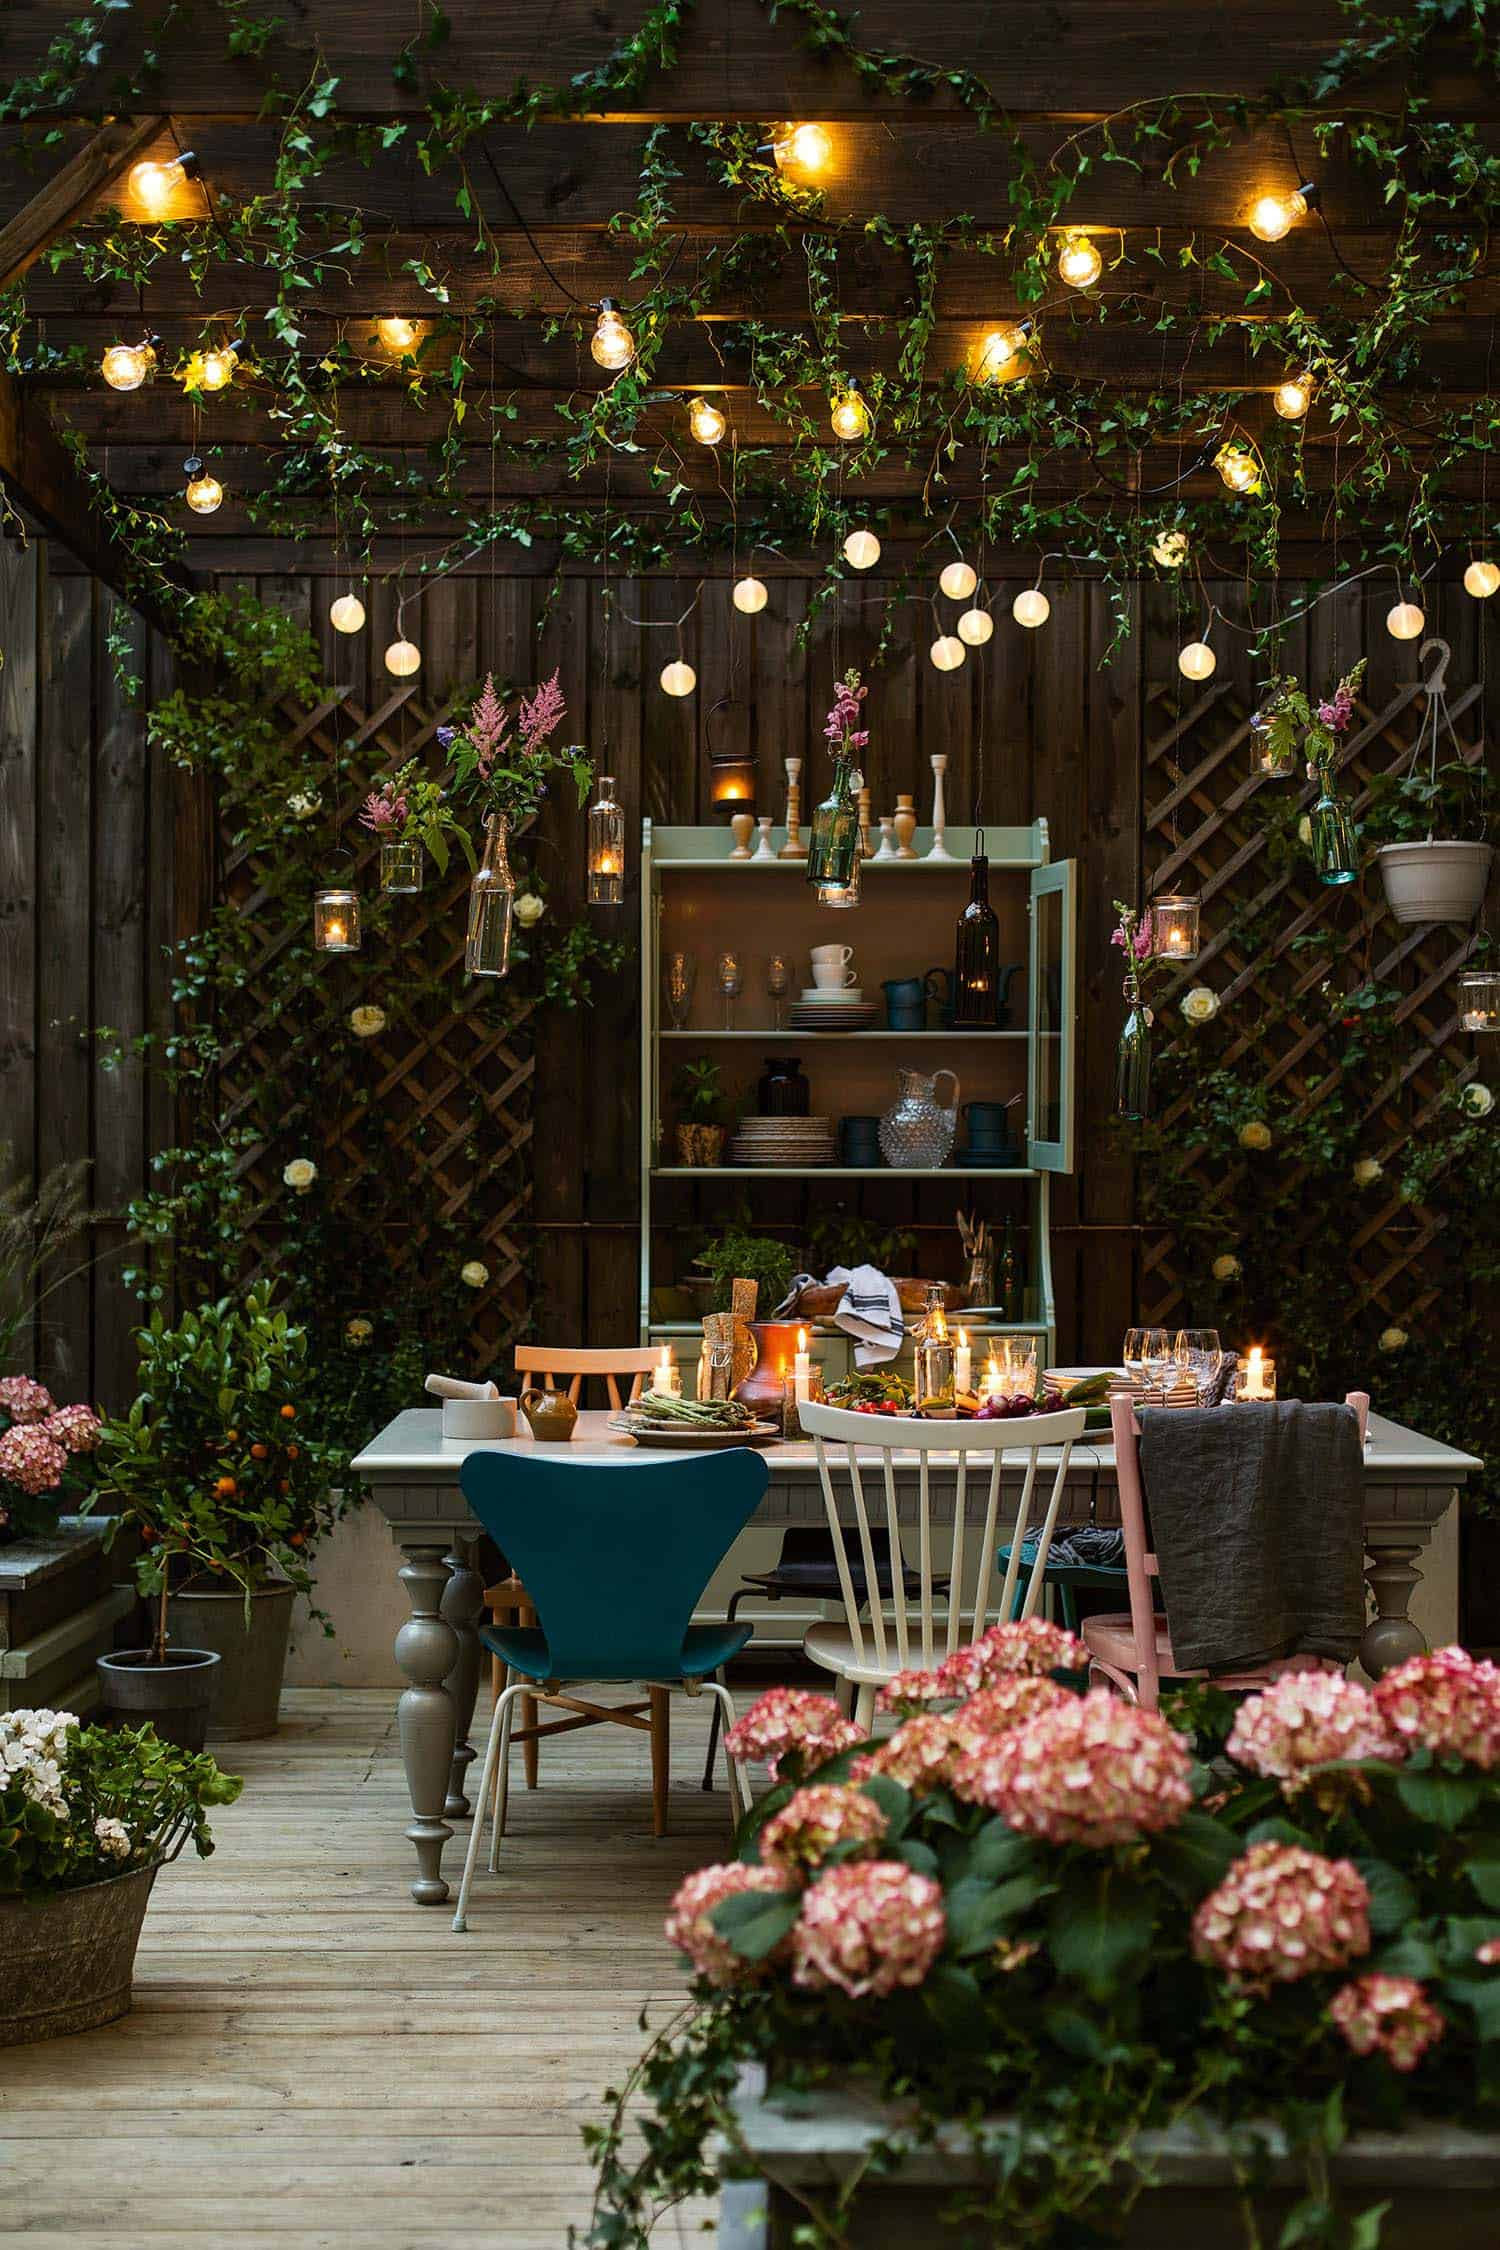 https://cdn.onekindesign.com/wp-content/uploads/2017/05/Bohemian-Garden-Design-Ideas-01-1-Kindesign.jpg